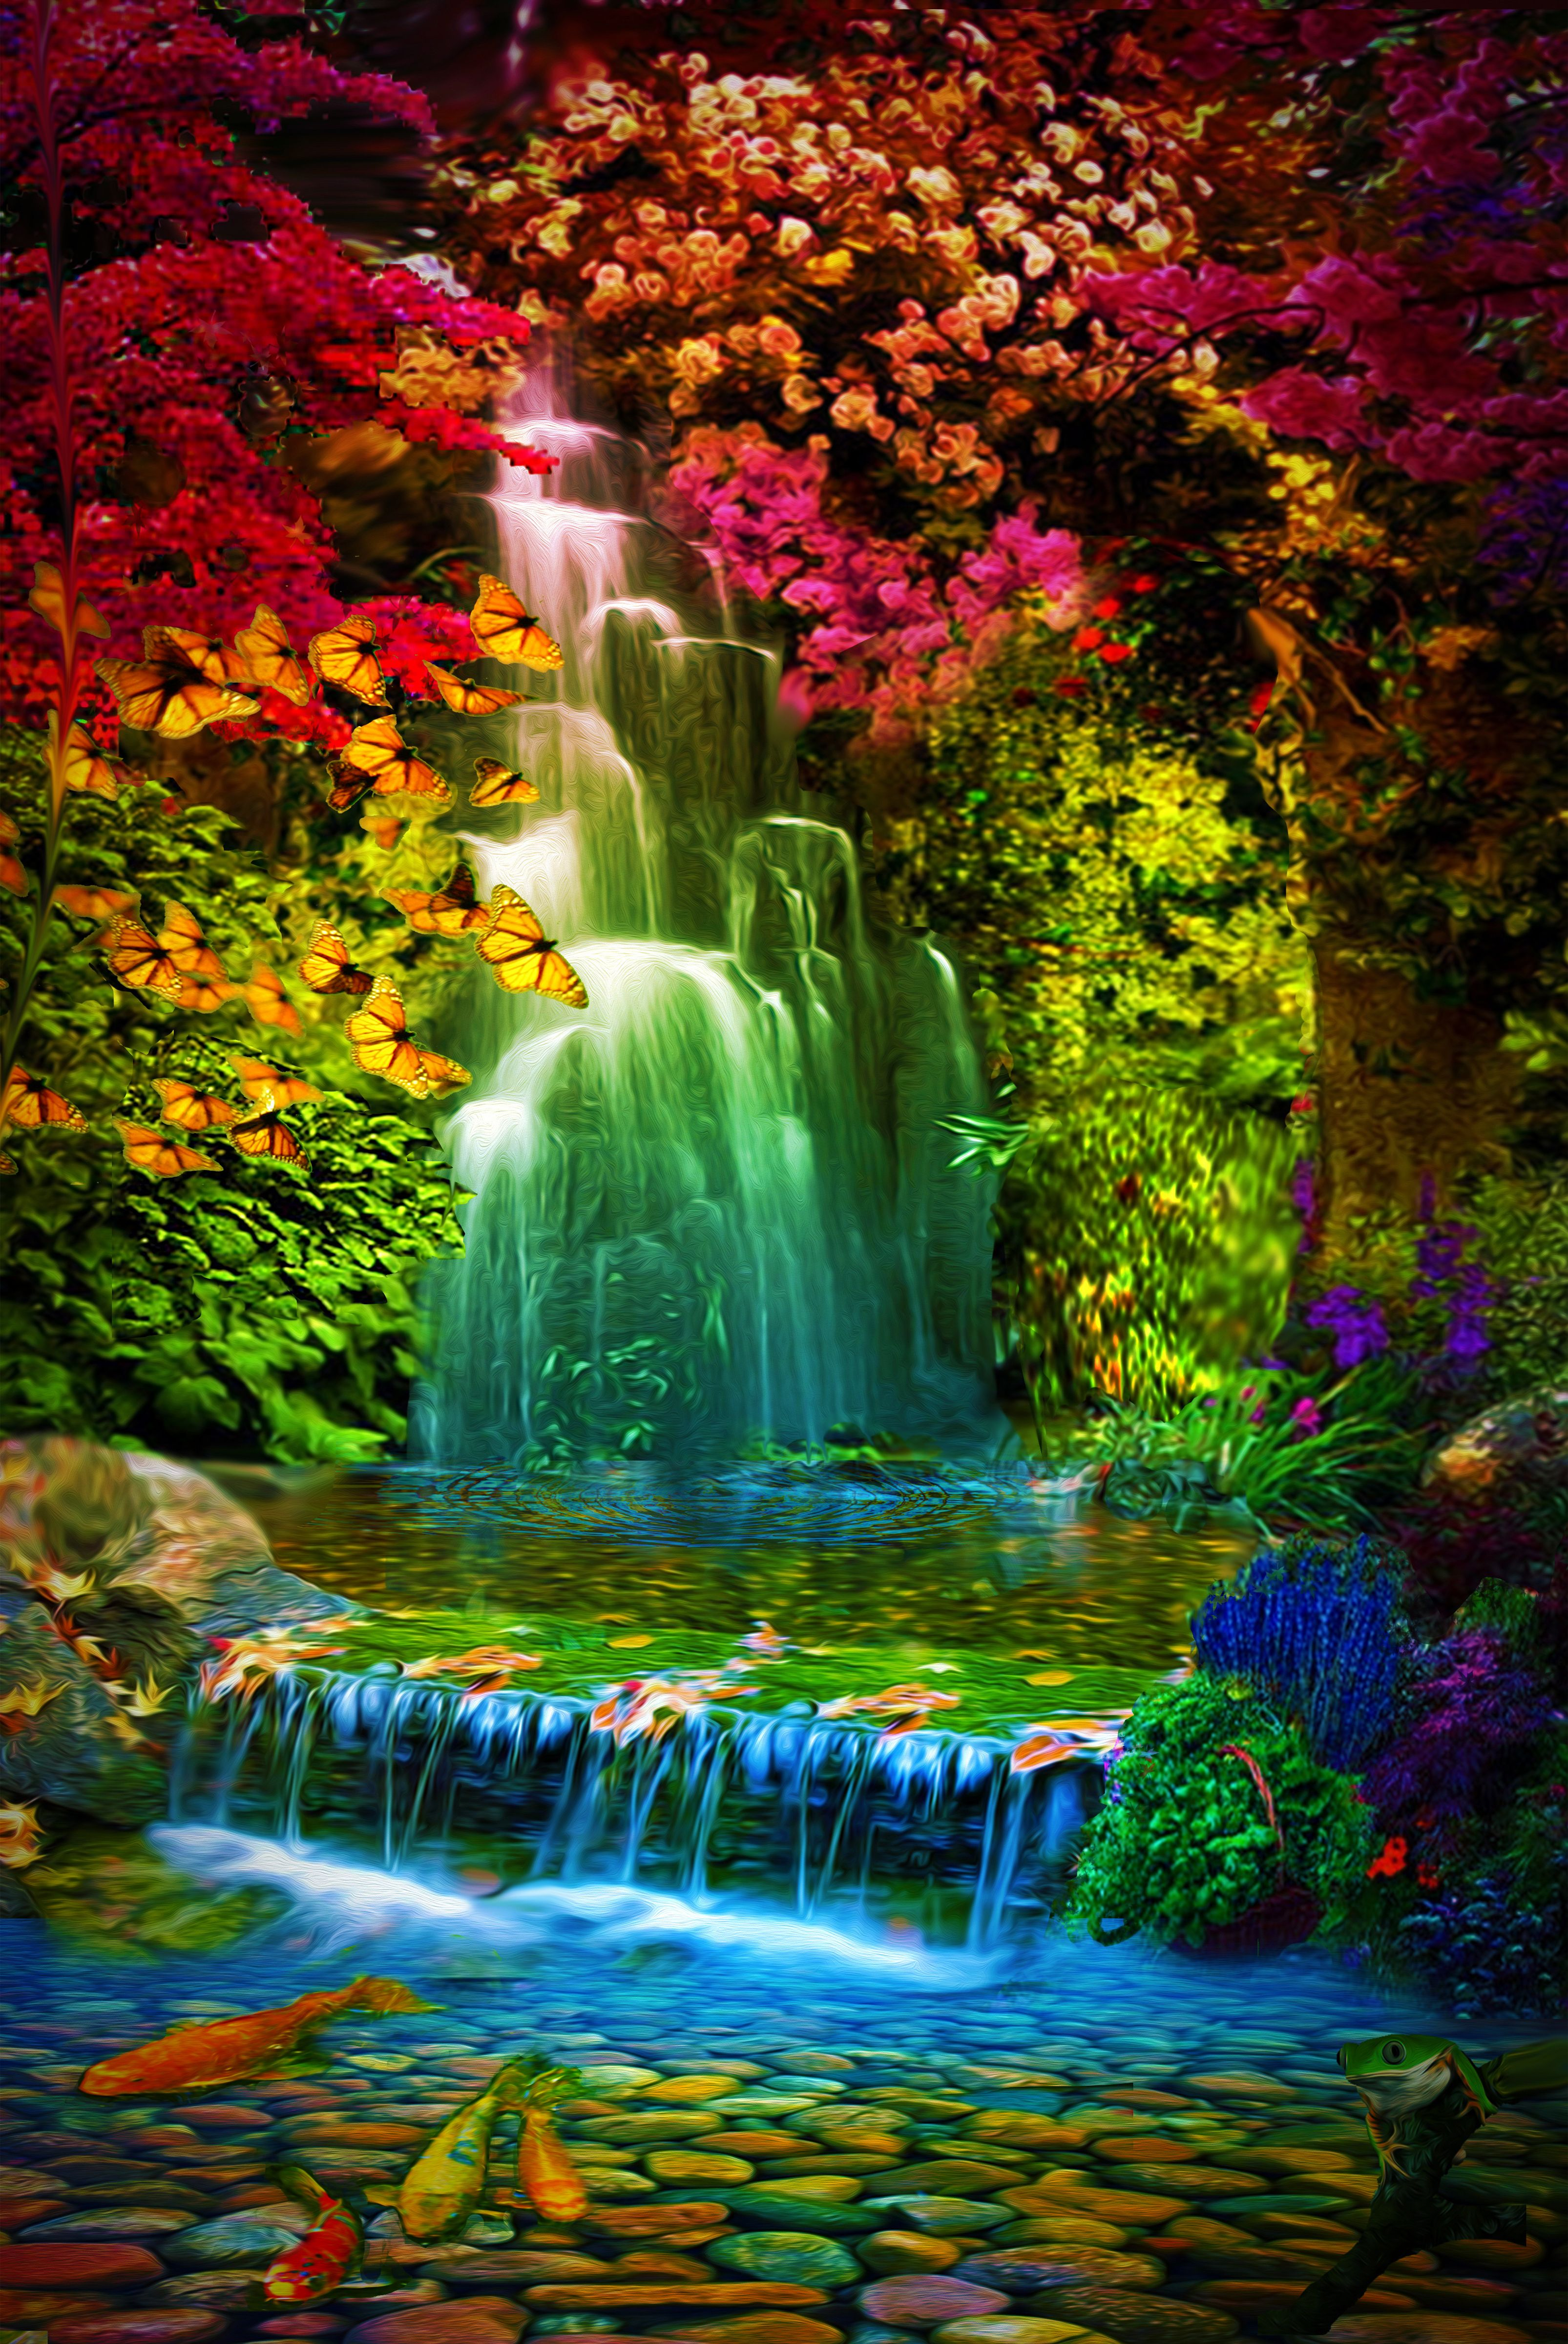 Water Garden Beautiful Nature Wallpaper Beautiful Places Nature Beautiful Landscapes